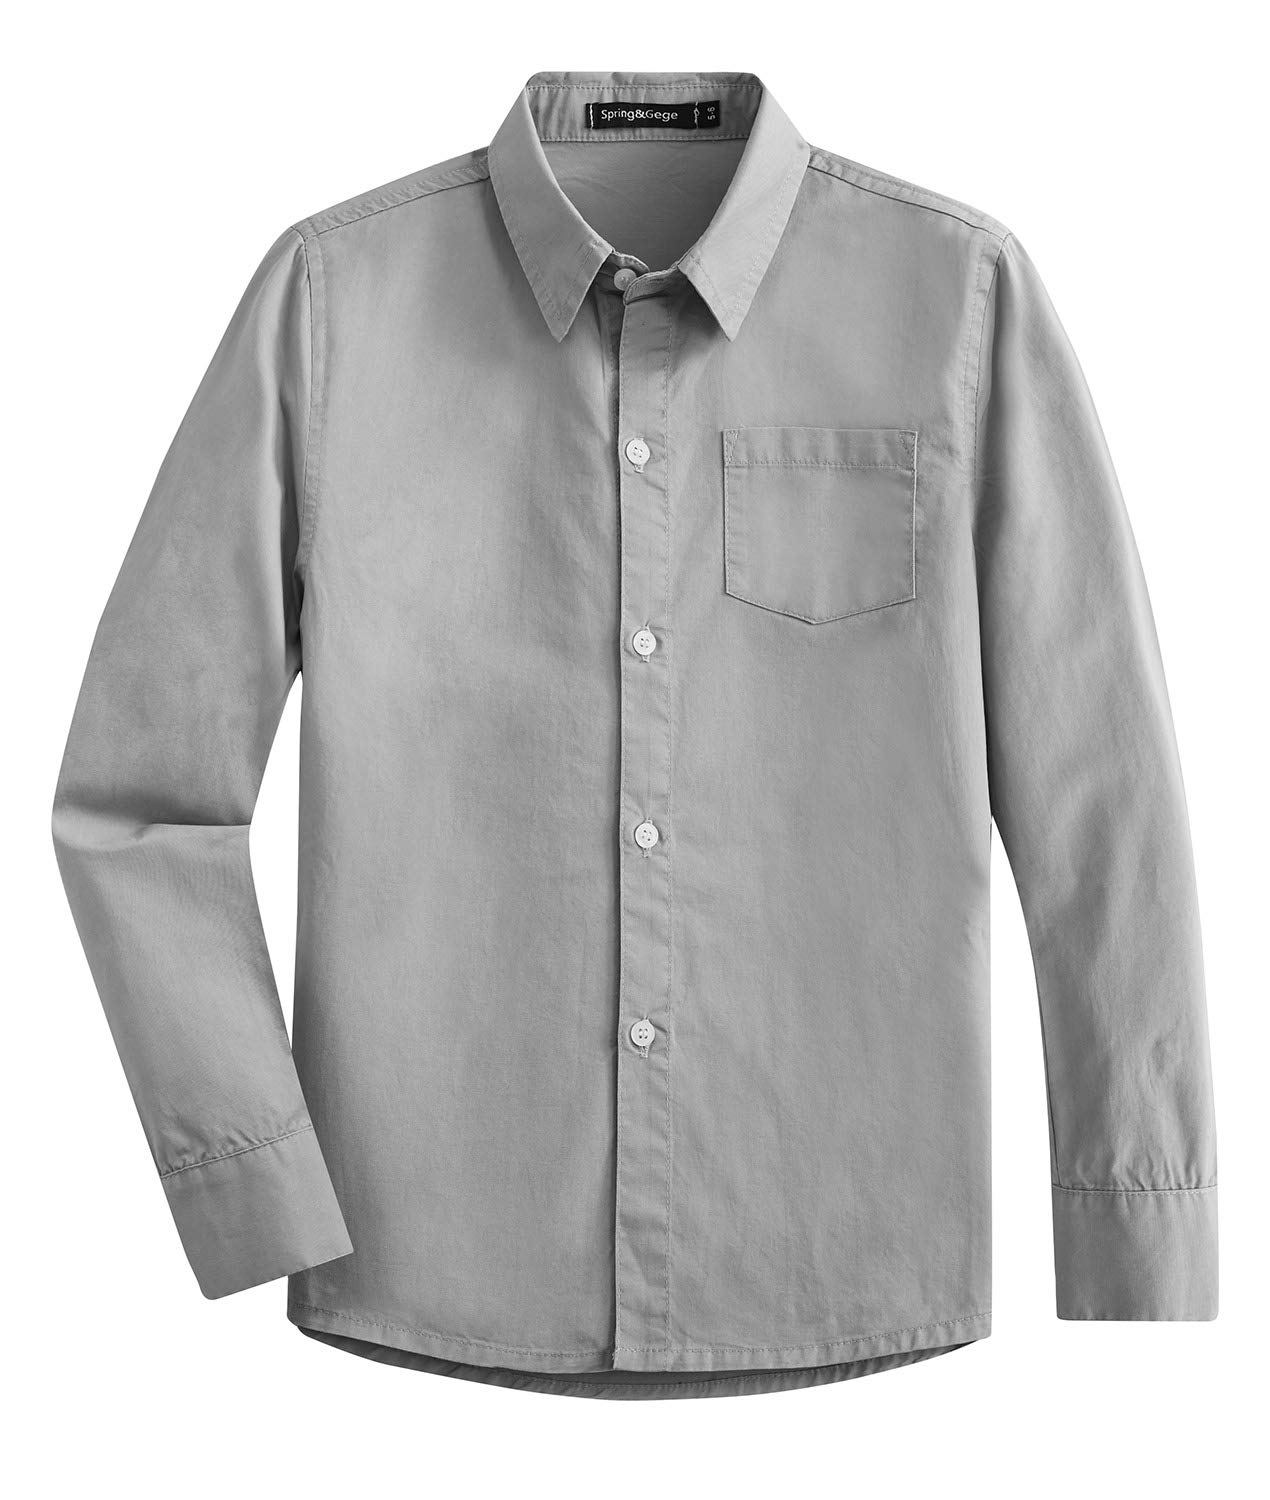 Spring&Gege Boys' Long Sleeve Solid Formal Cotton Twill Dress Shirts Silver 11-12 Years by Spring&Gege (Image #1)